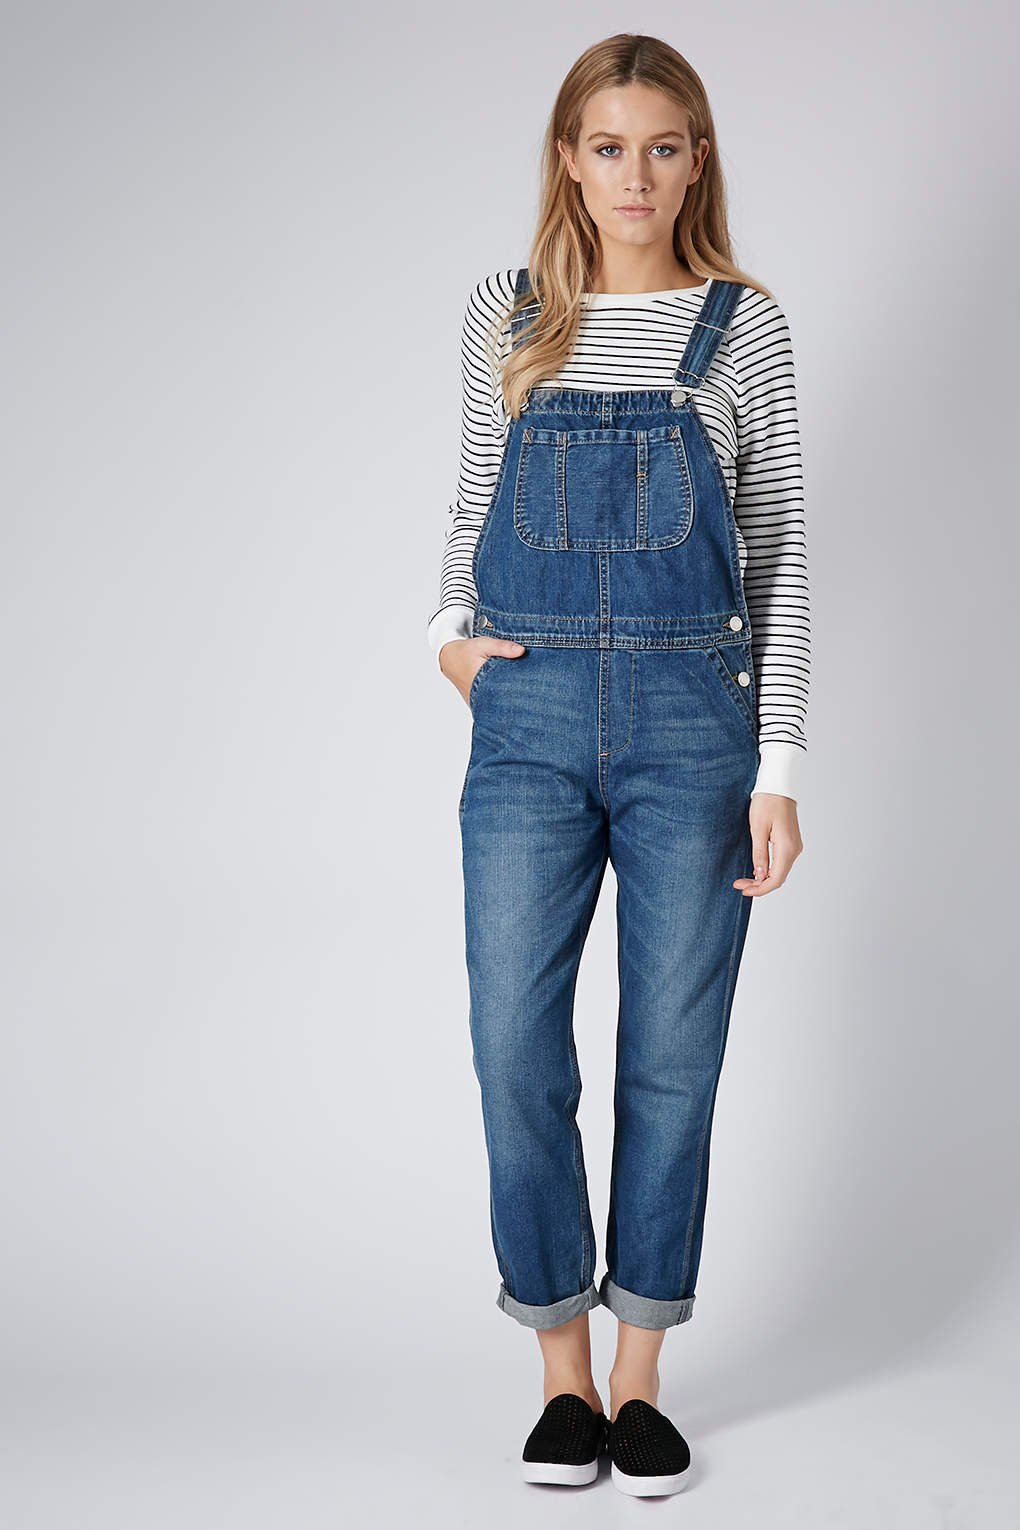 Dungaree or dungarees may refer to: Dungaree (fabric), denim; Jeans, trousers made from denim; This disambiguation page lists articles associated with the title Dungaree. If an internal link led you here, you may wish to change the link to point directly to the intended article.